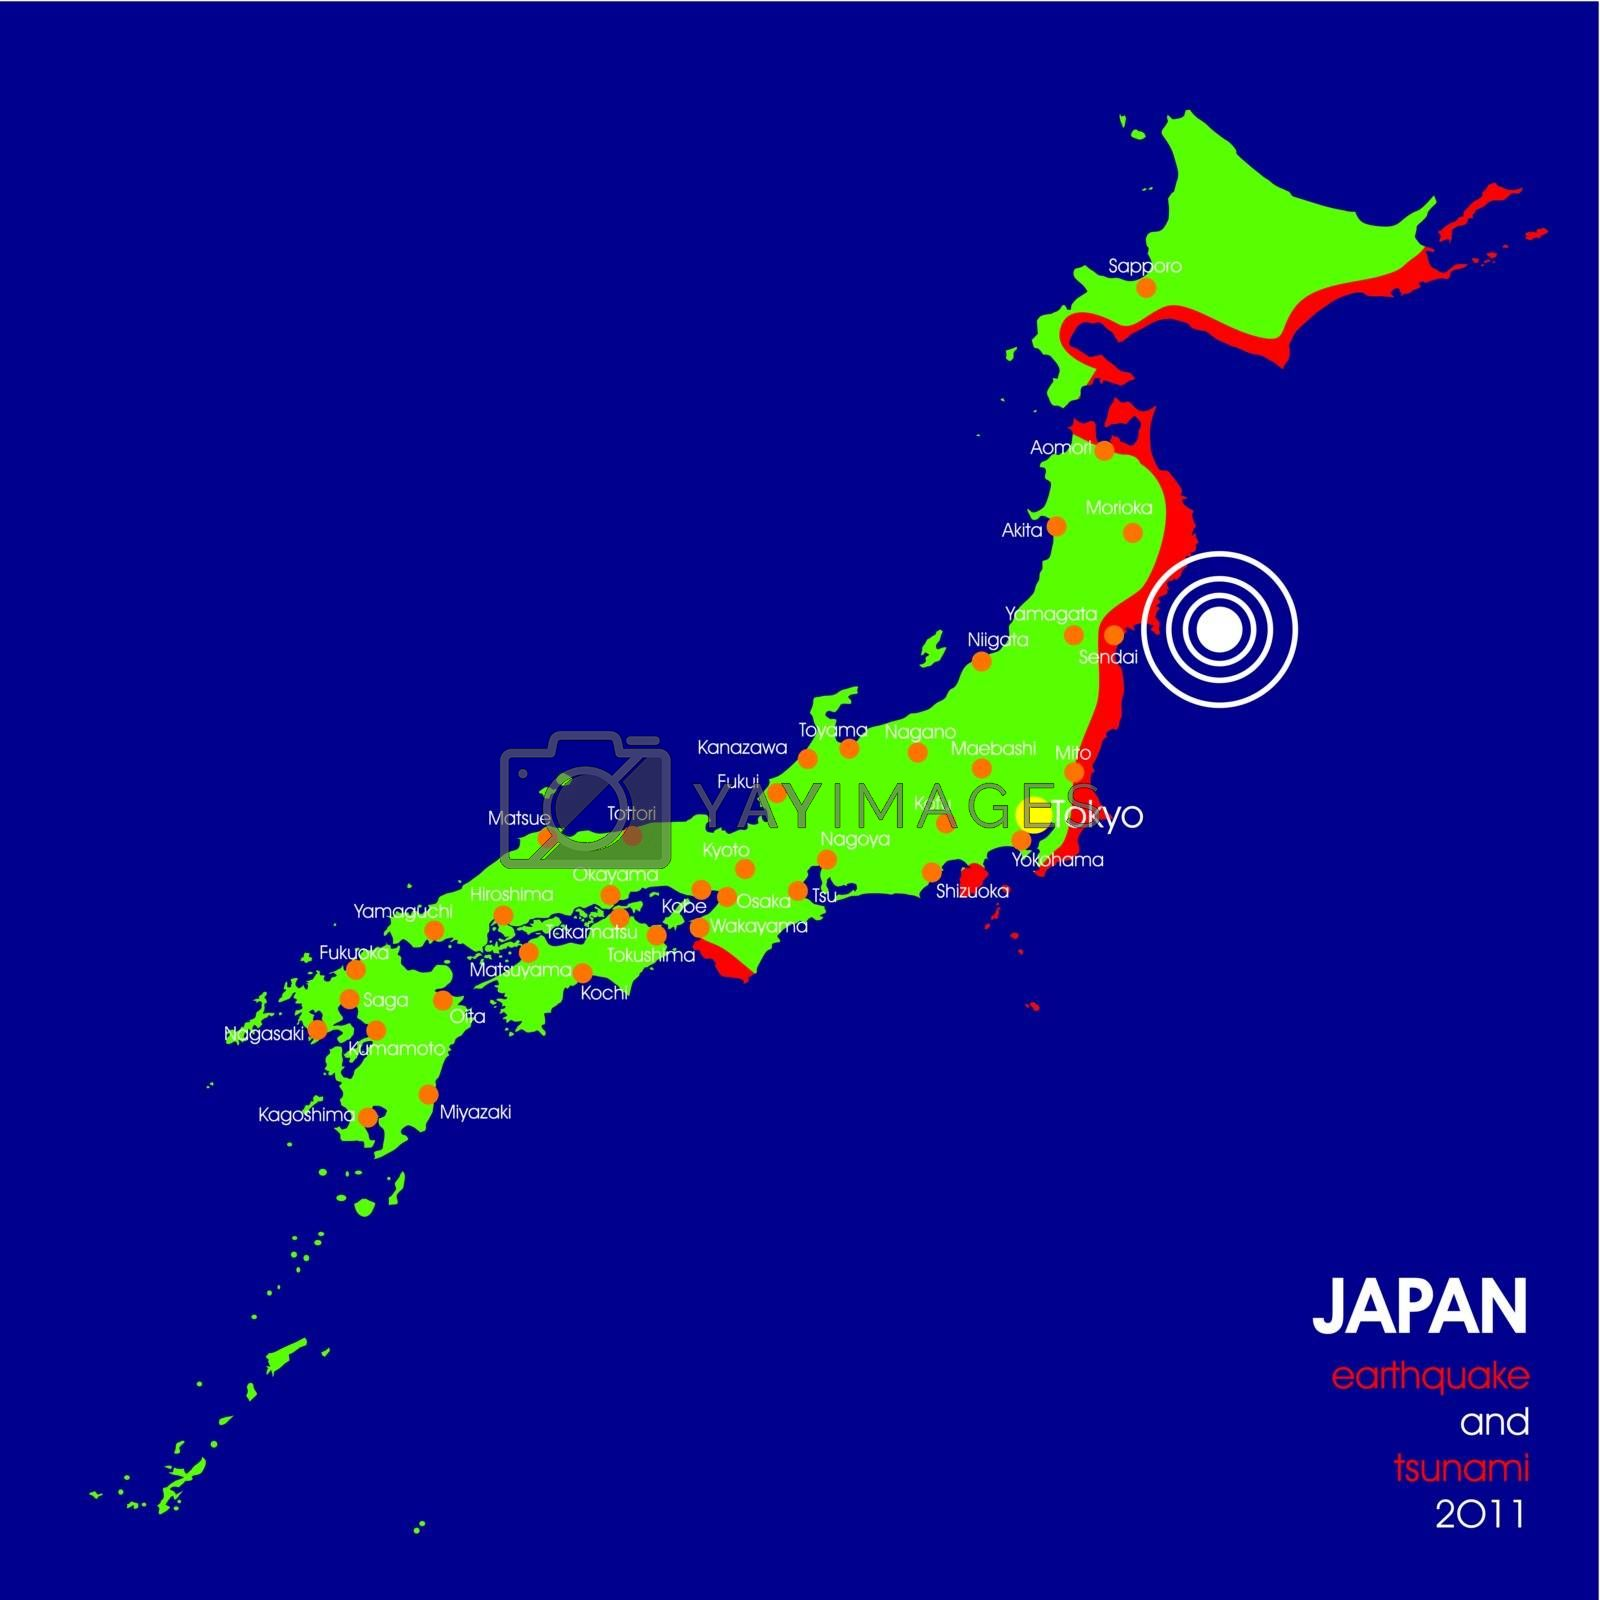 Detailed Japan earthquake map with epicenter